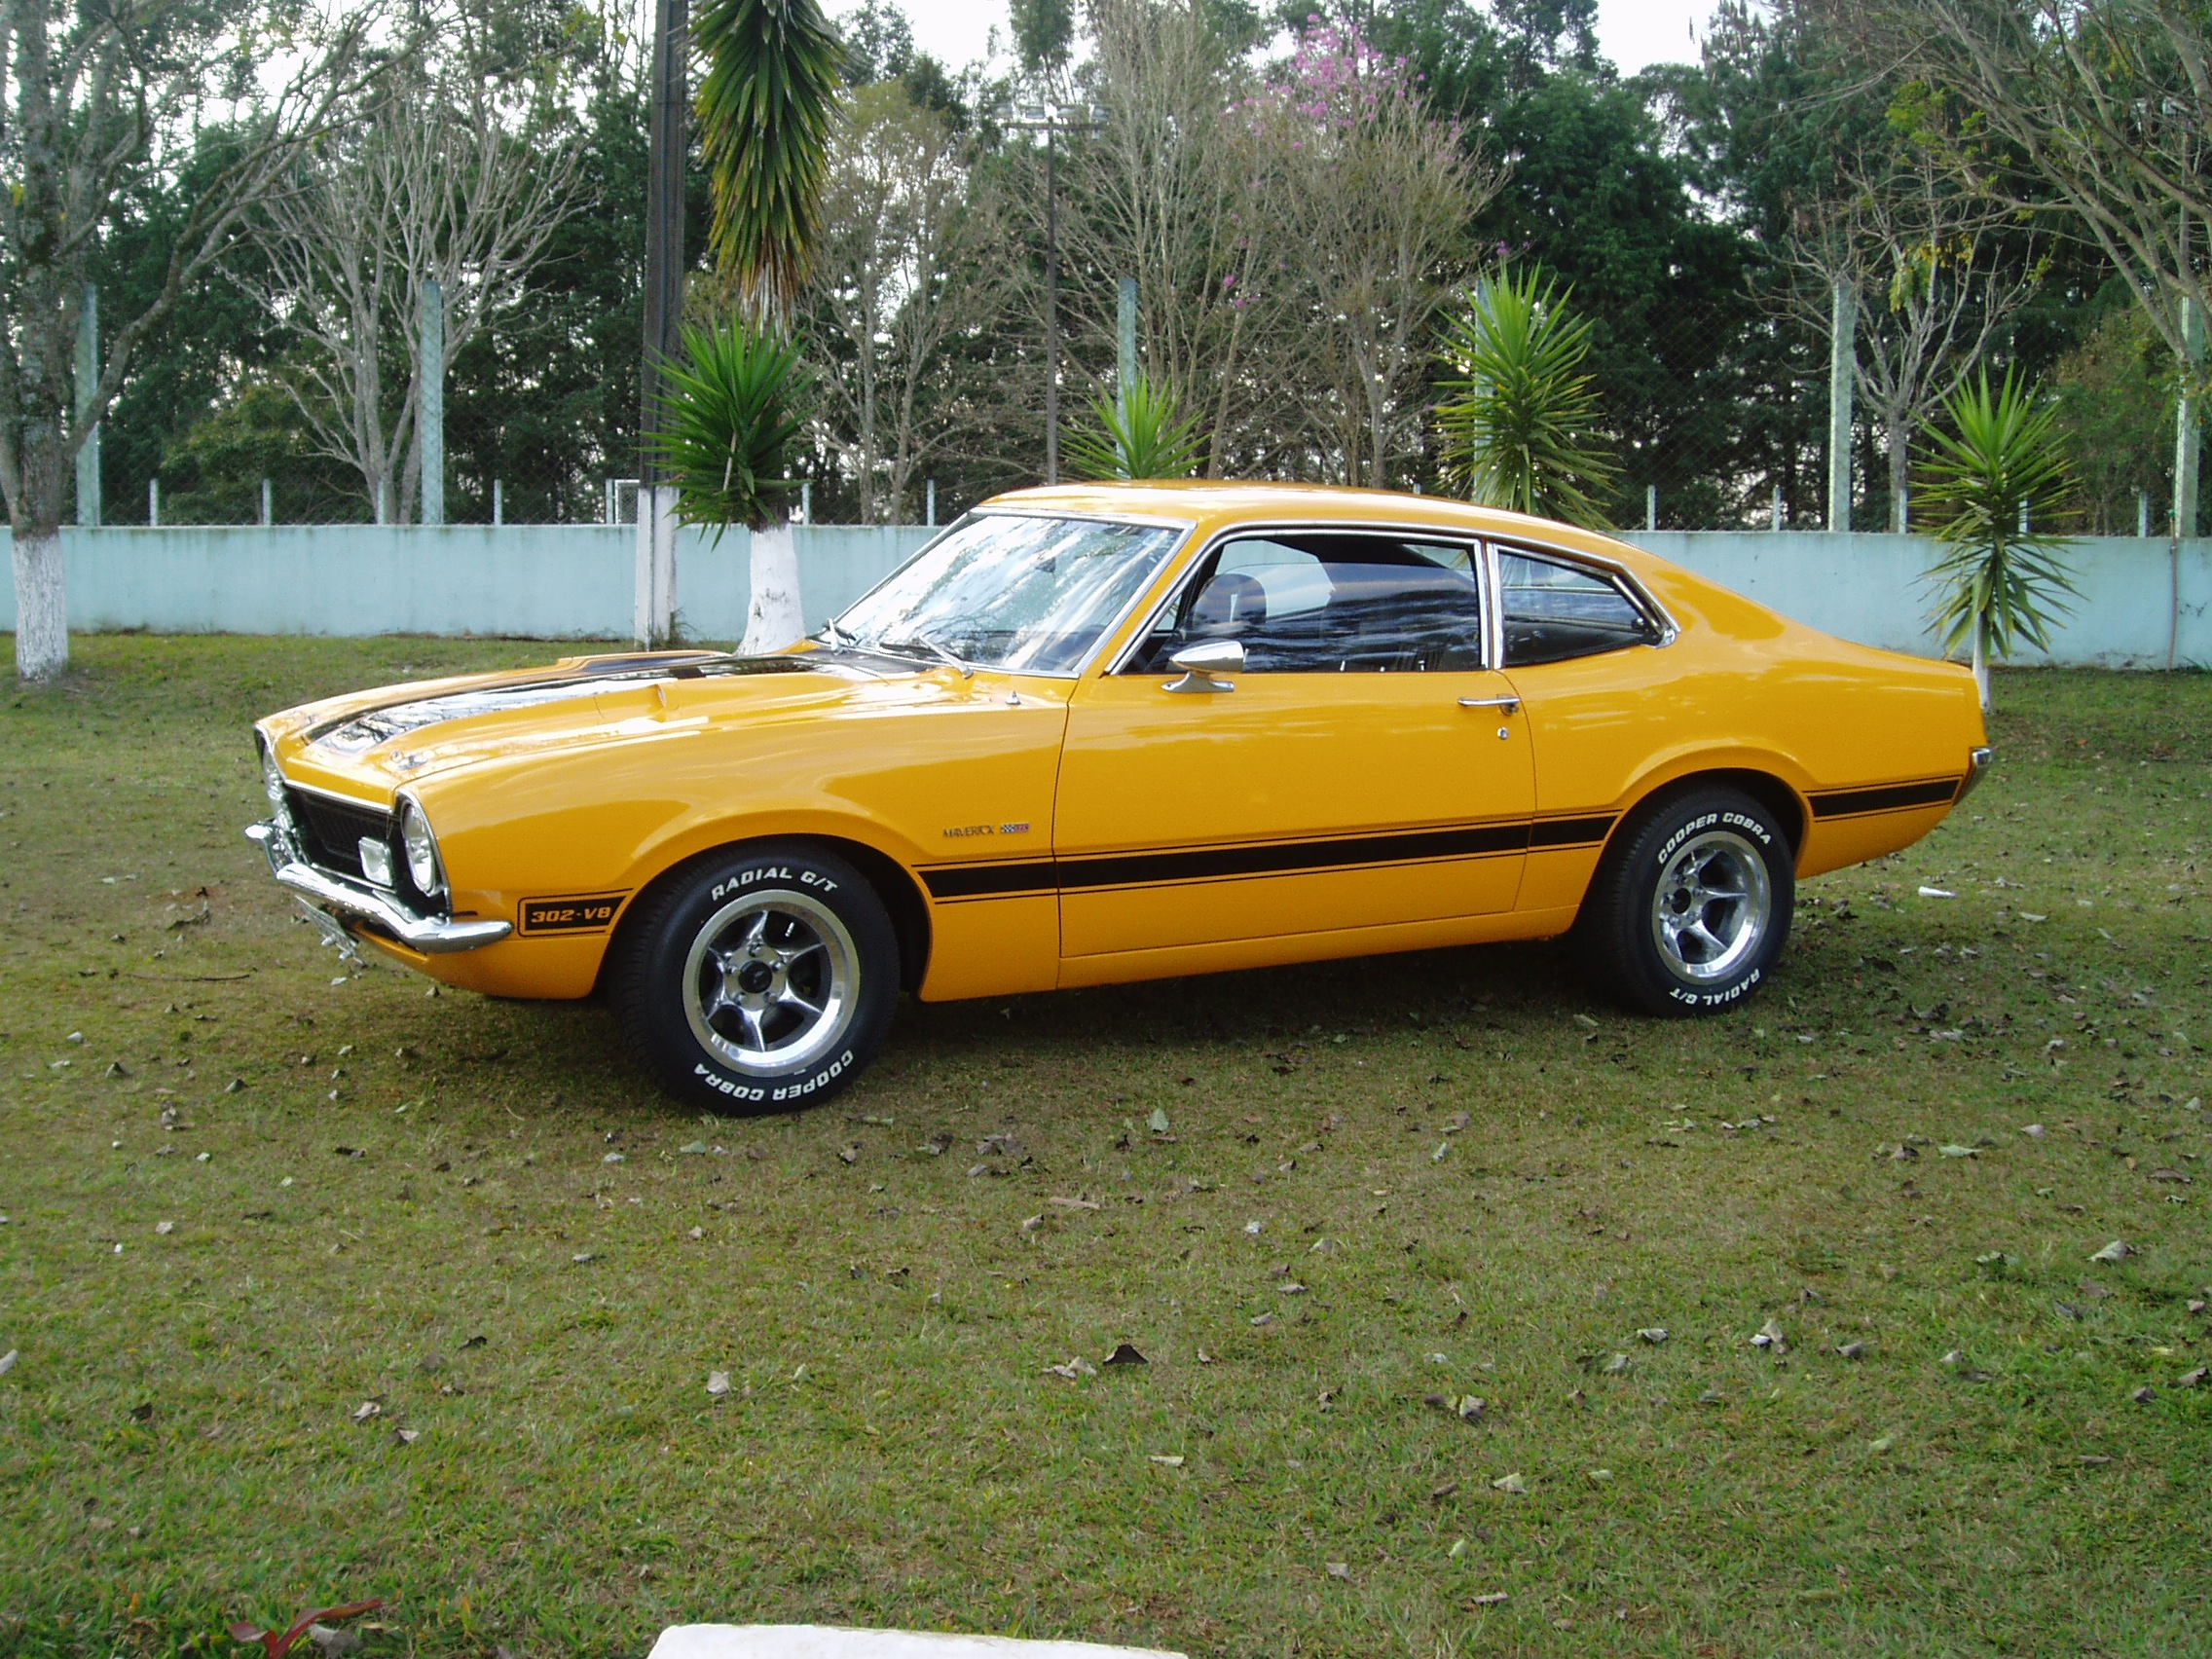 Ford maverick race cars yahoo image search results ford maverick pinterest ford maverick ford and cars